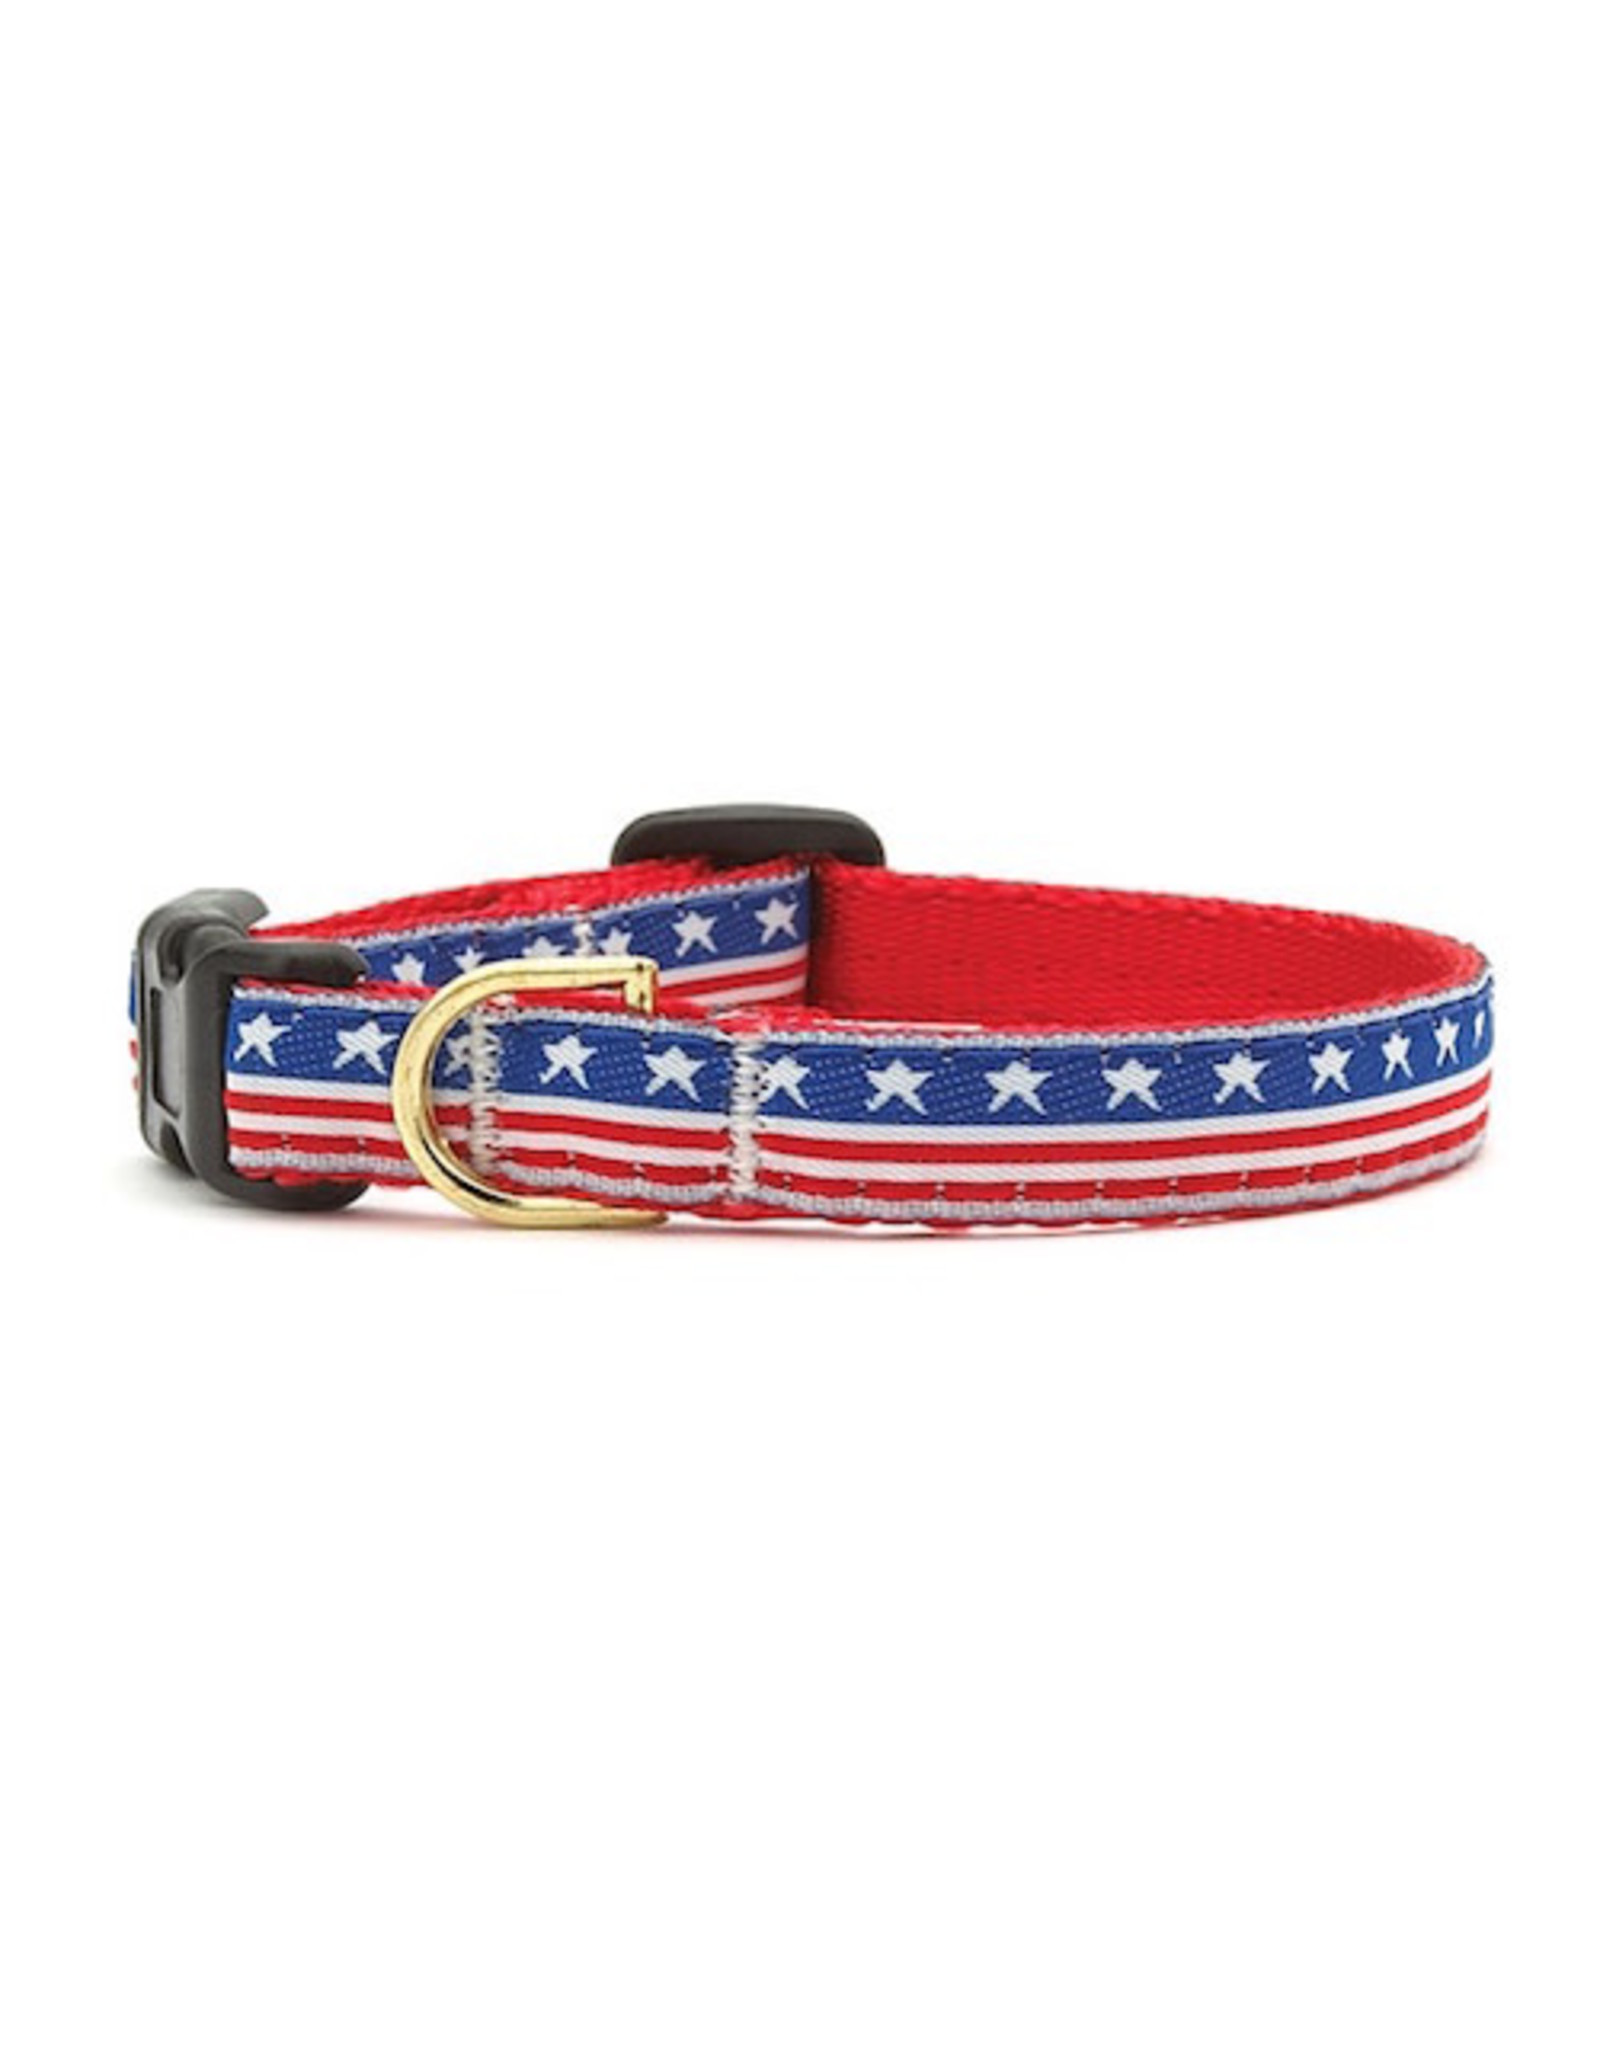 Up Country Stars and Stripes Collar: Narrow, S